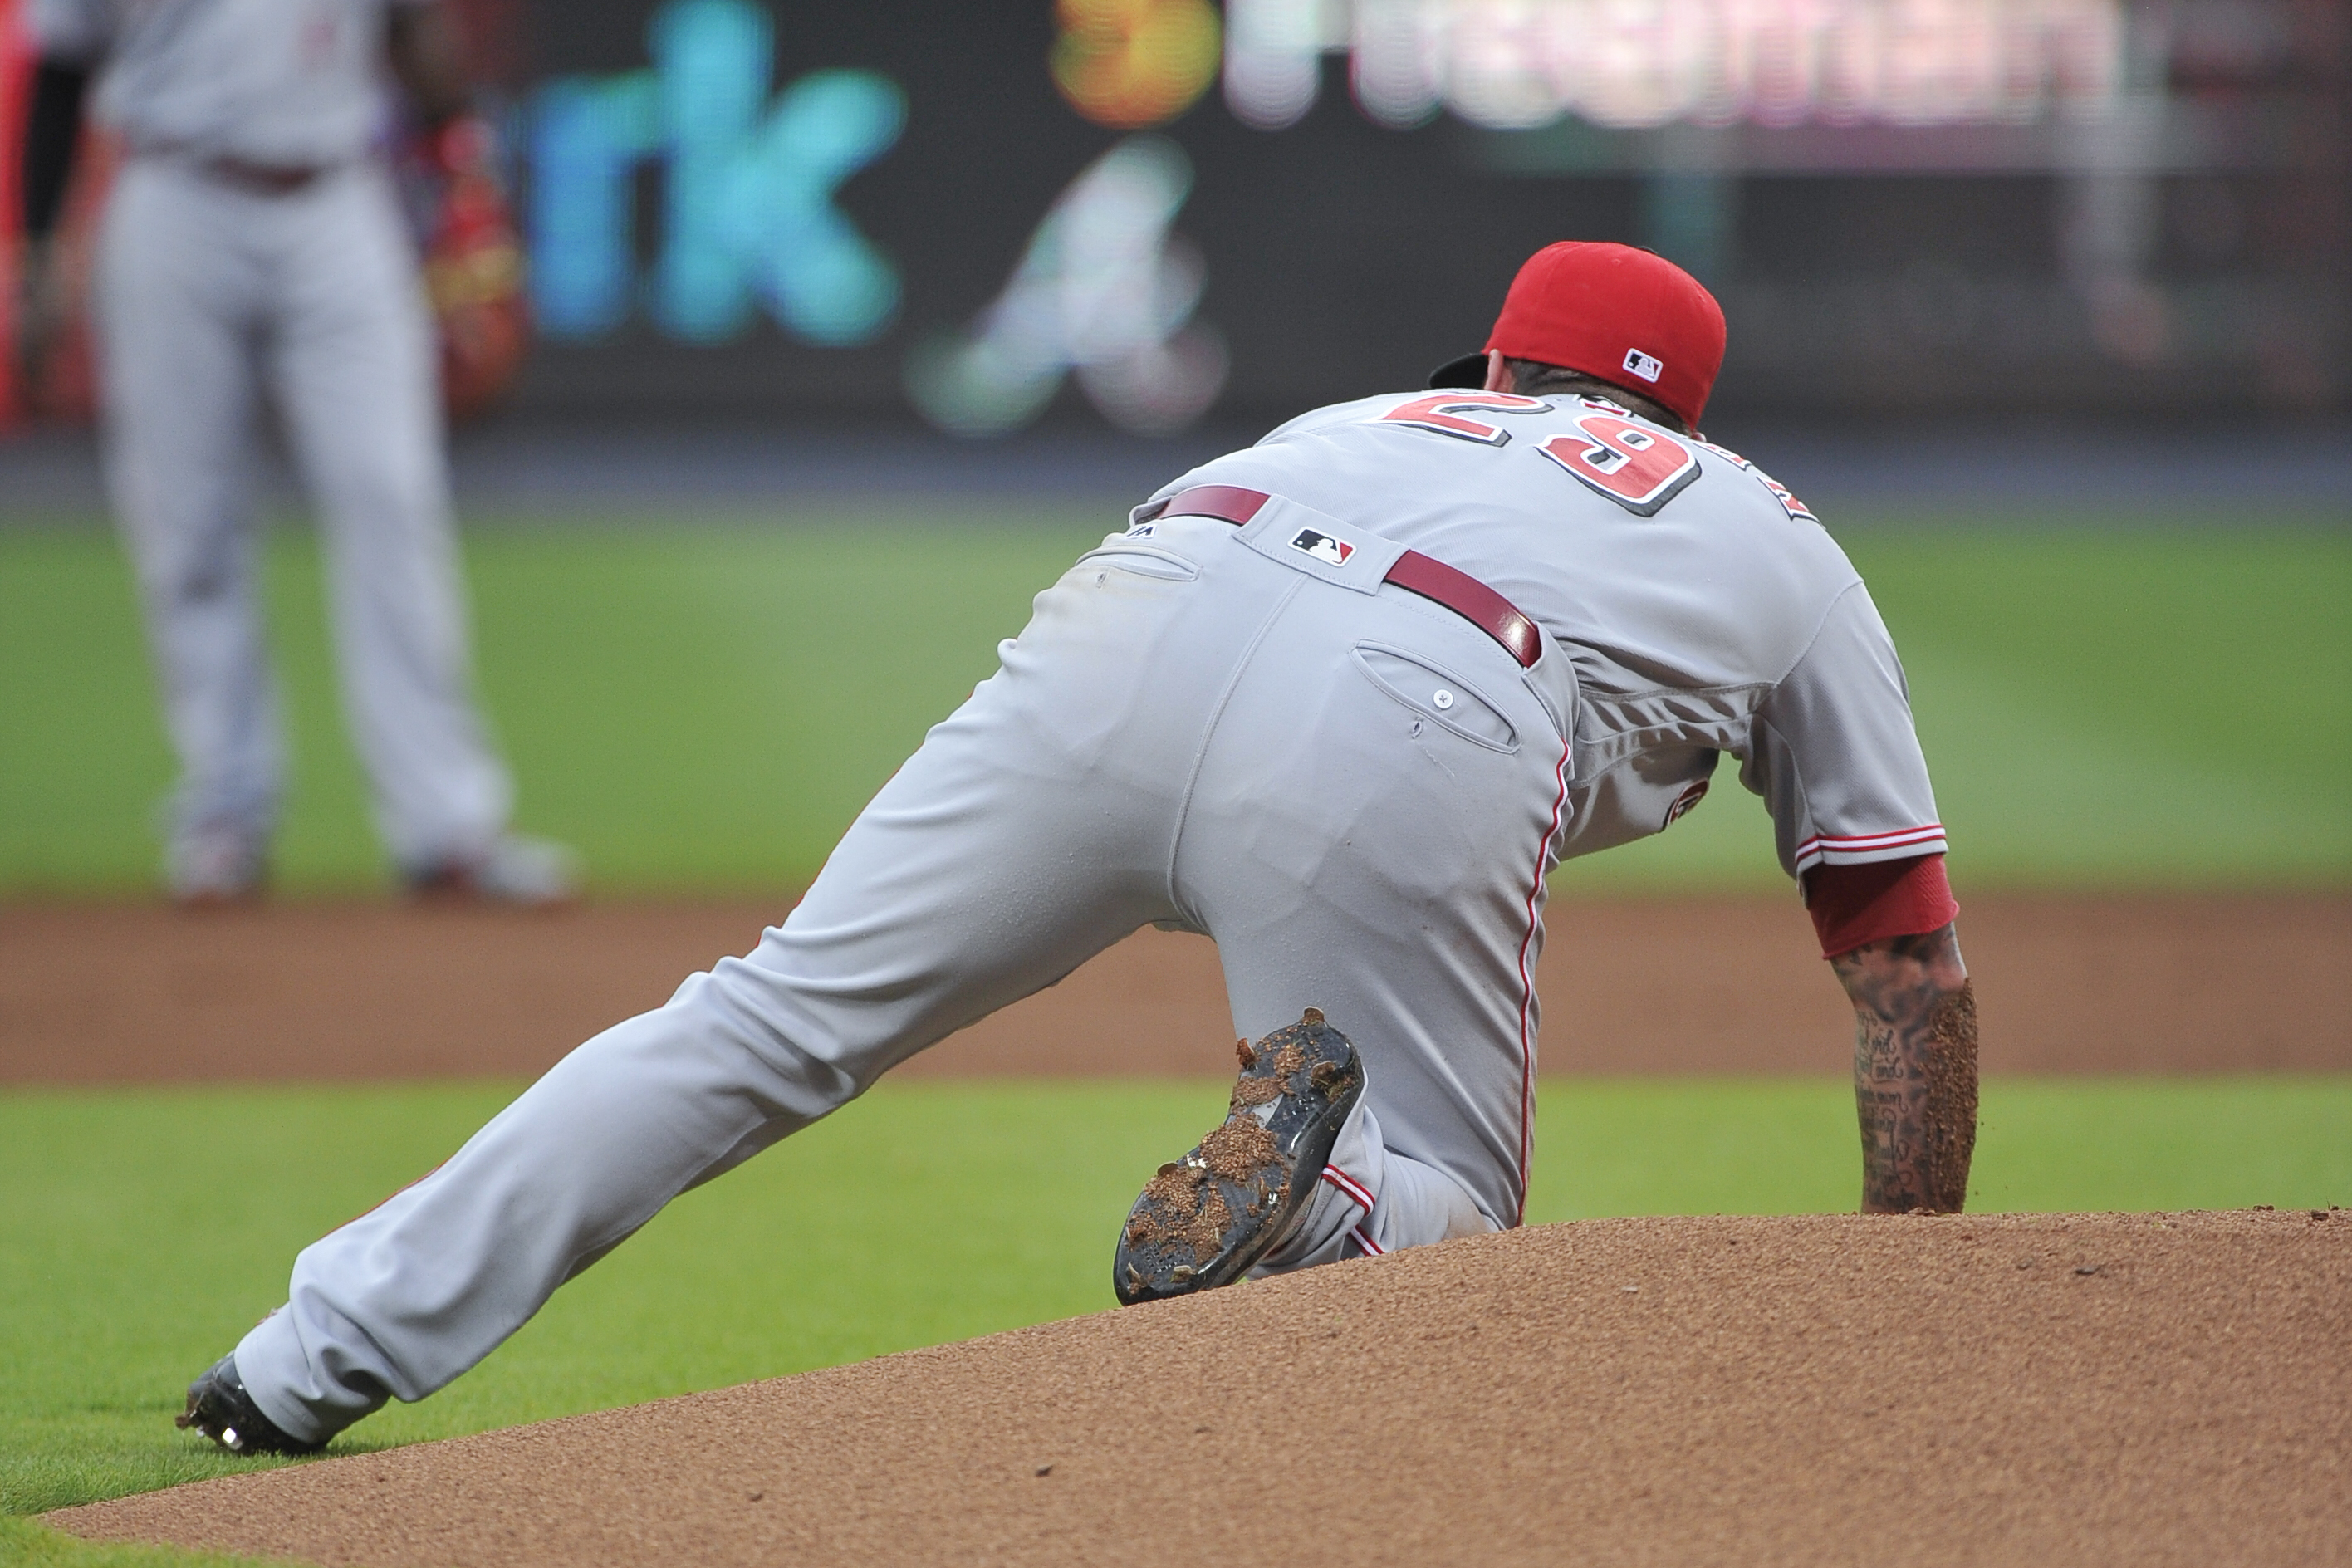 Cincinnati Reds' Brandon Finnegan gets up after falling from the mound while turning to attempt a pick-off throw of Atlanta Braves' Mallex Smith at second base during the first inning of a baseball game, Tuesday, June, 14, 2016, in Atlanta. (AP Photo/John